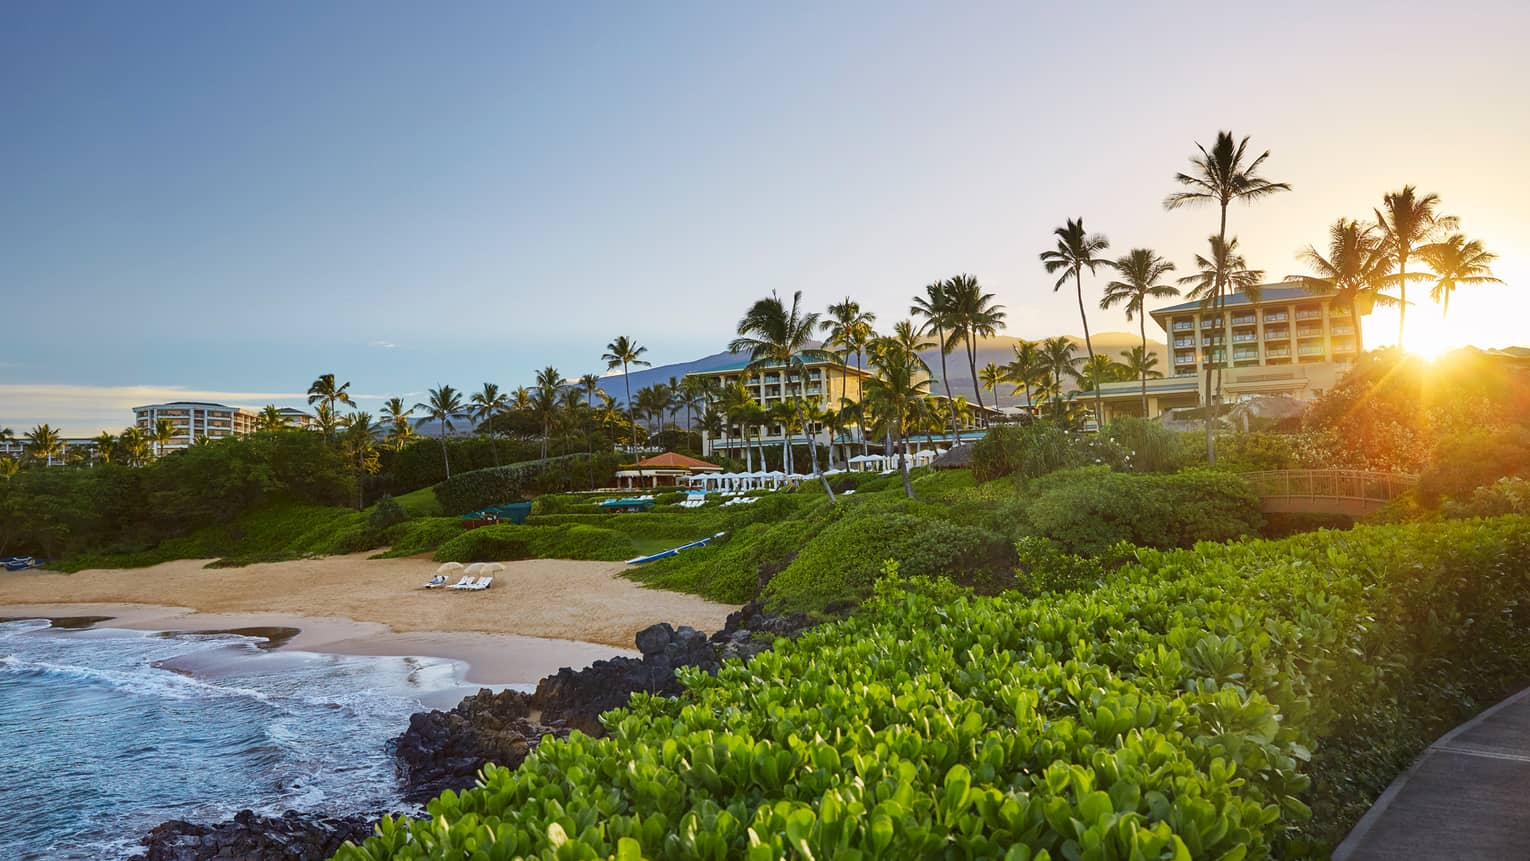 The Wailea beach shoreline and resort